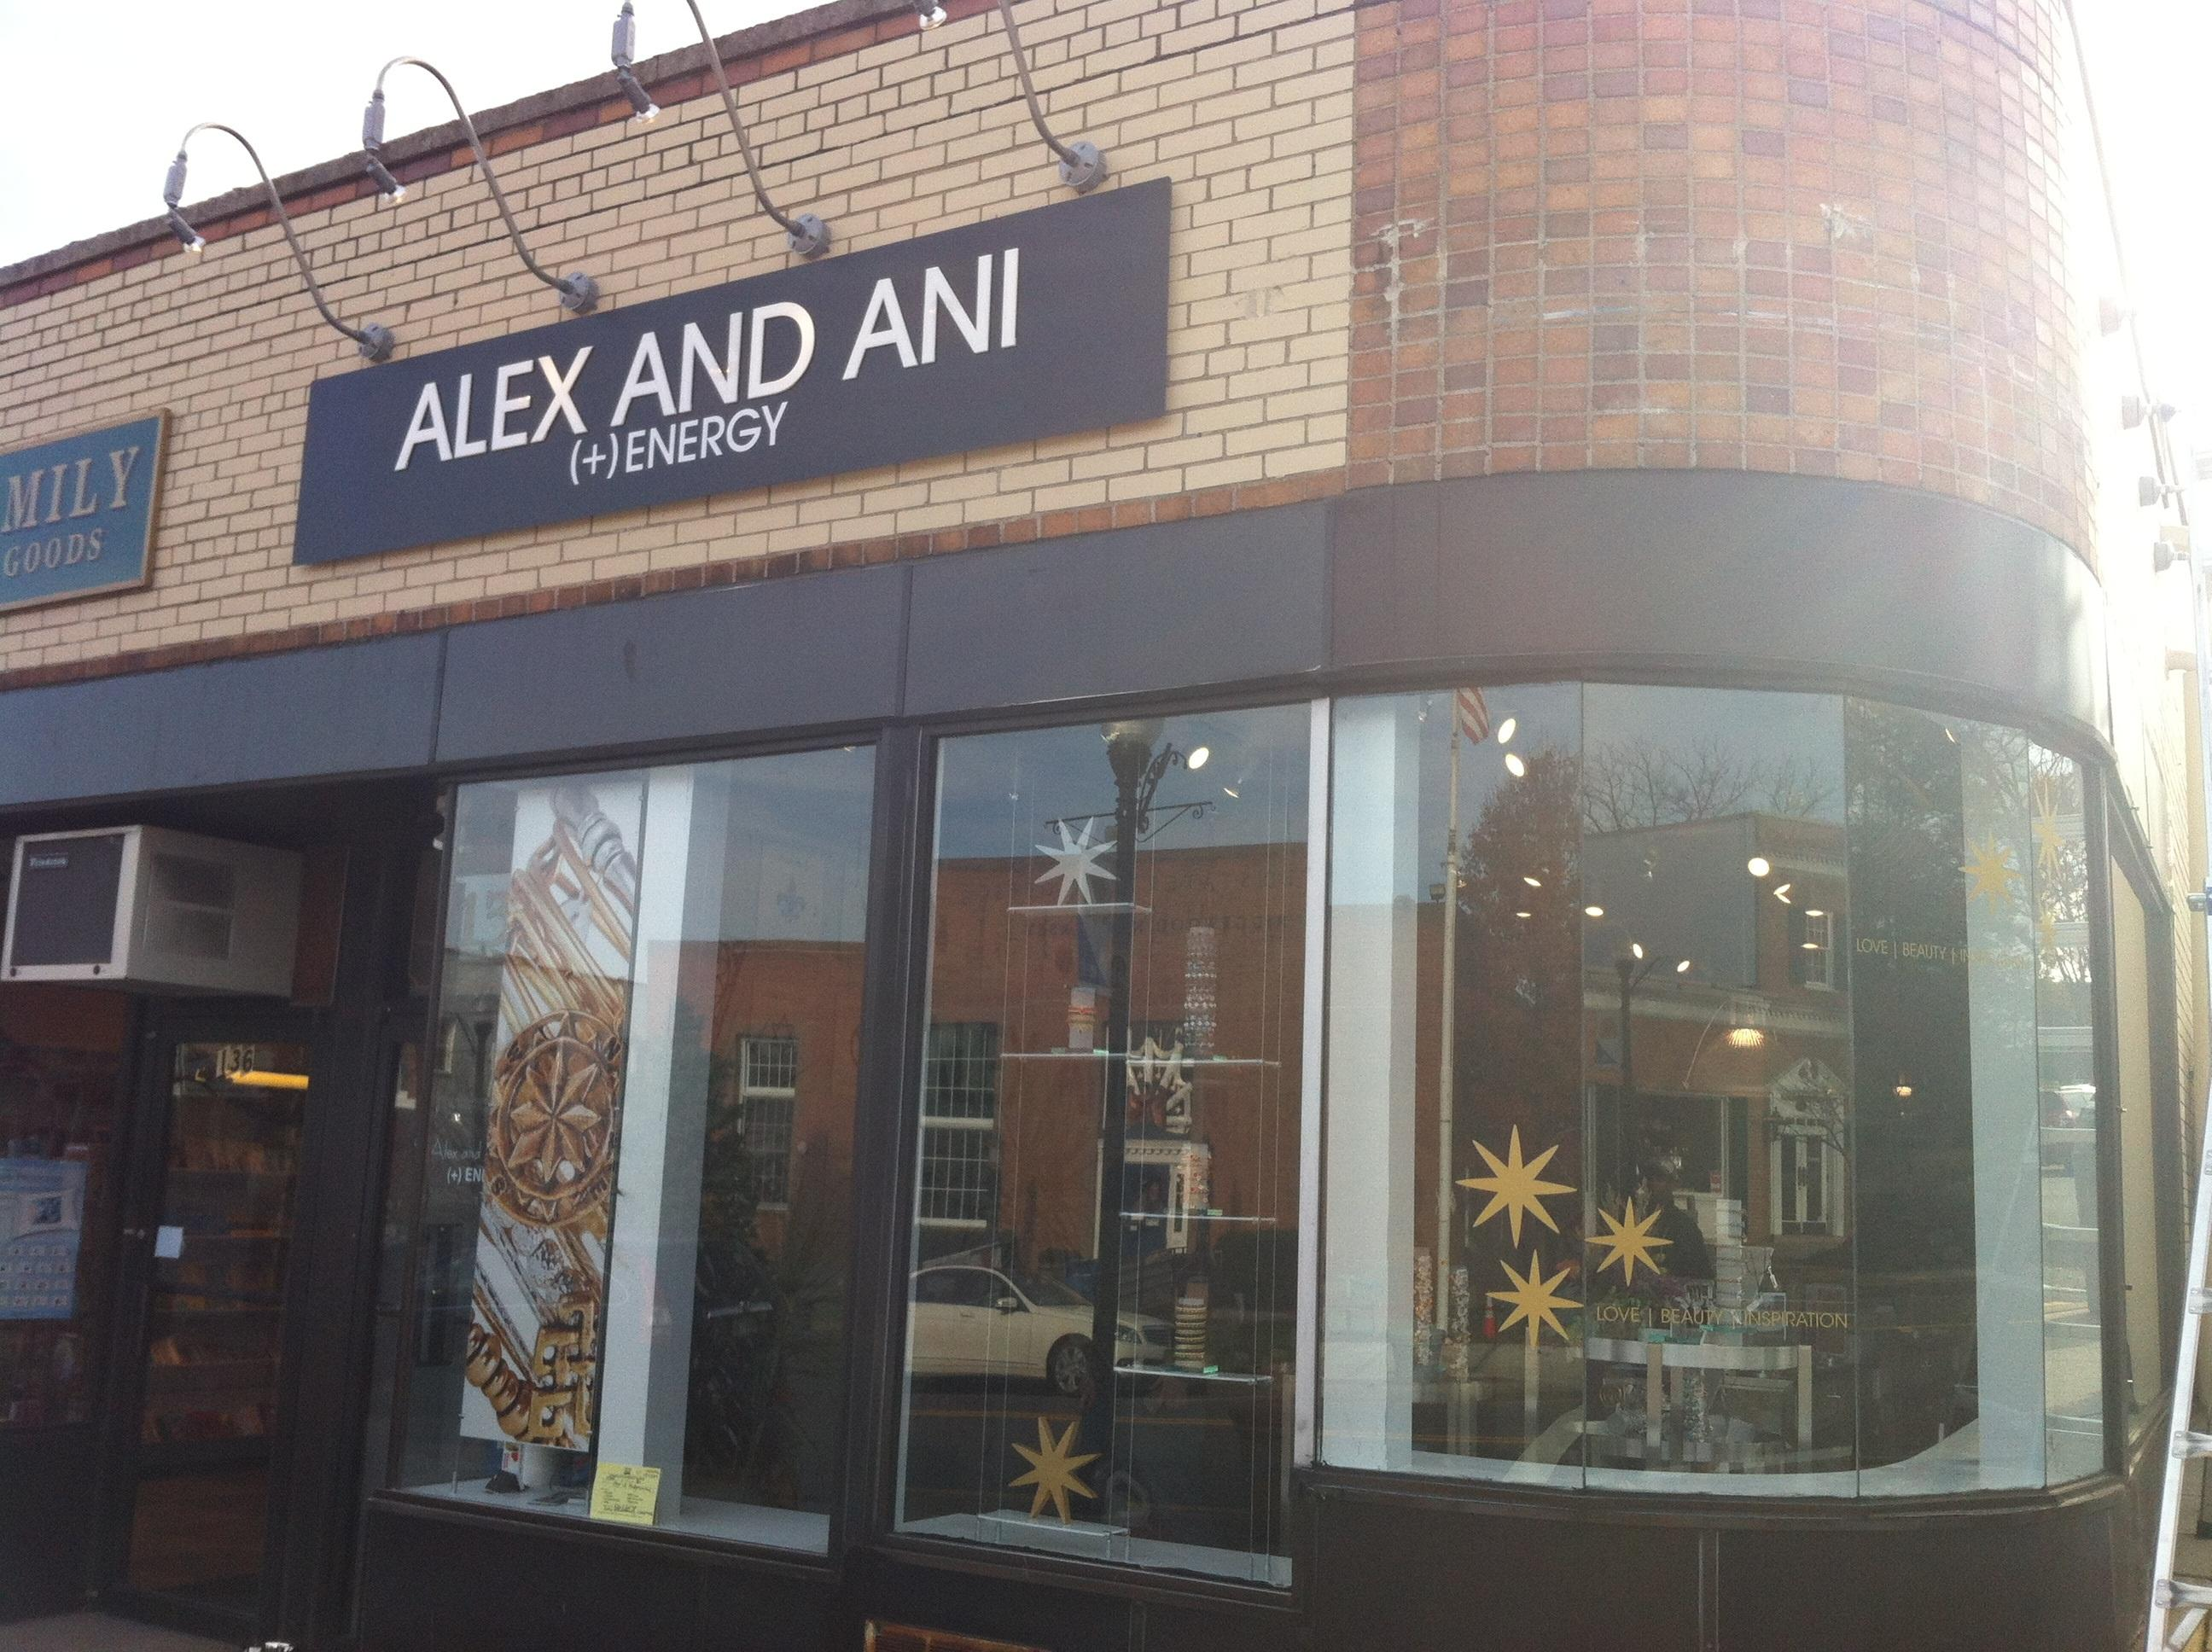 Alex and Ani Institute is the vehicle that makes it possible to share these principles, technologies, and ideas that have helped us build our company. We look forward to sharing the secrets of our success and energy to help others attain their goals.